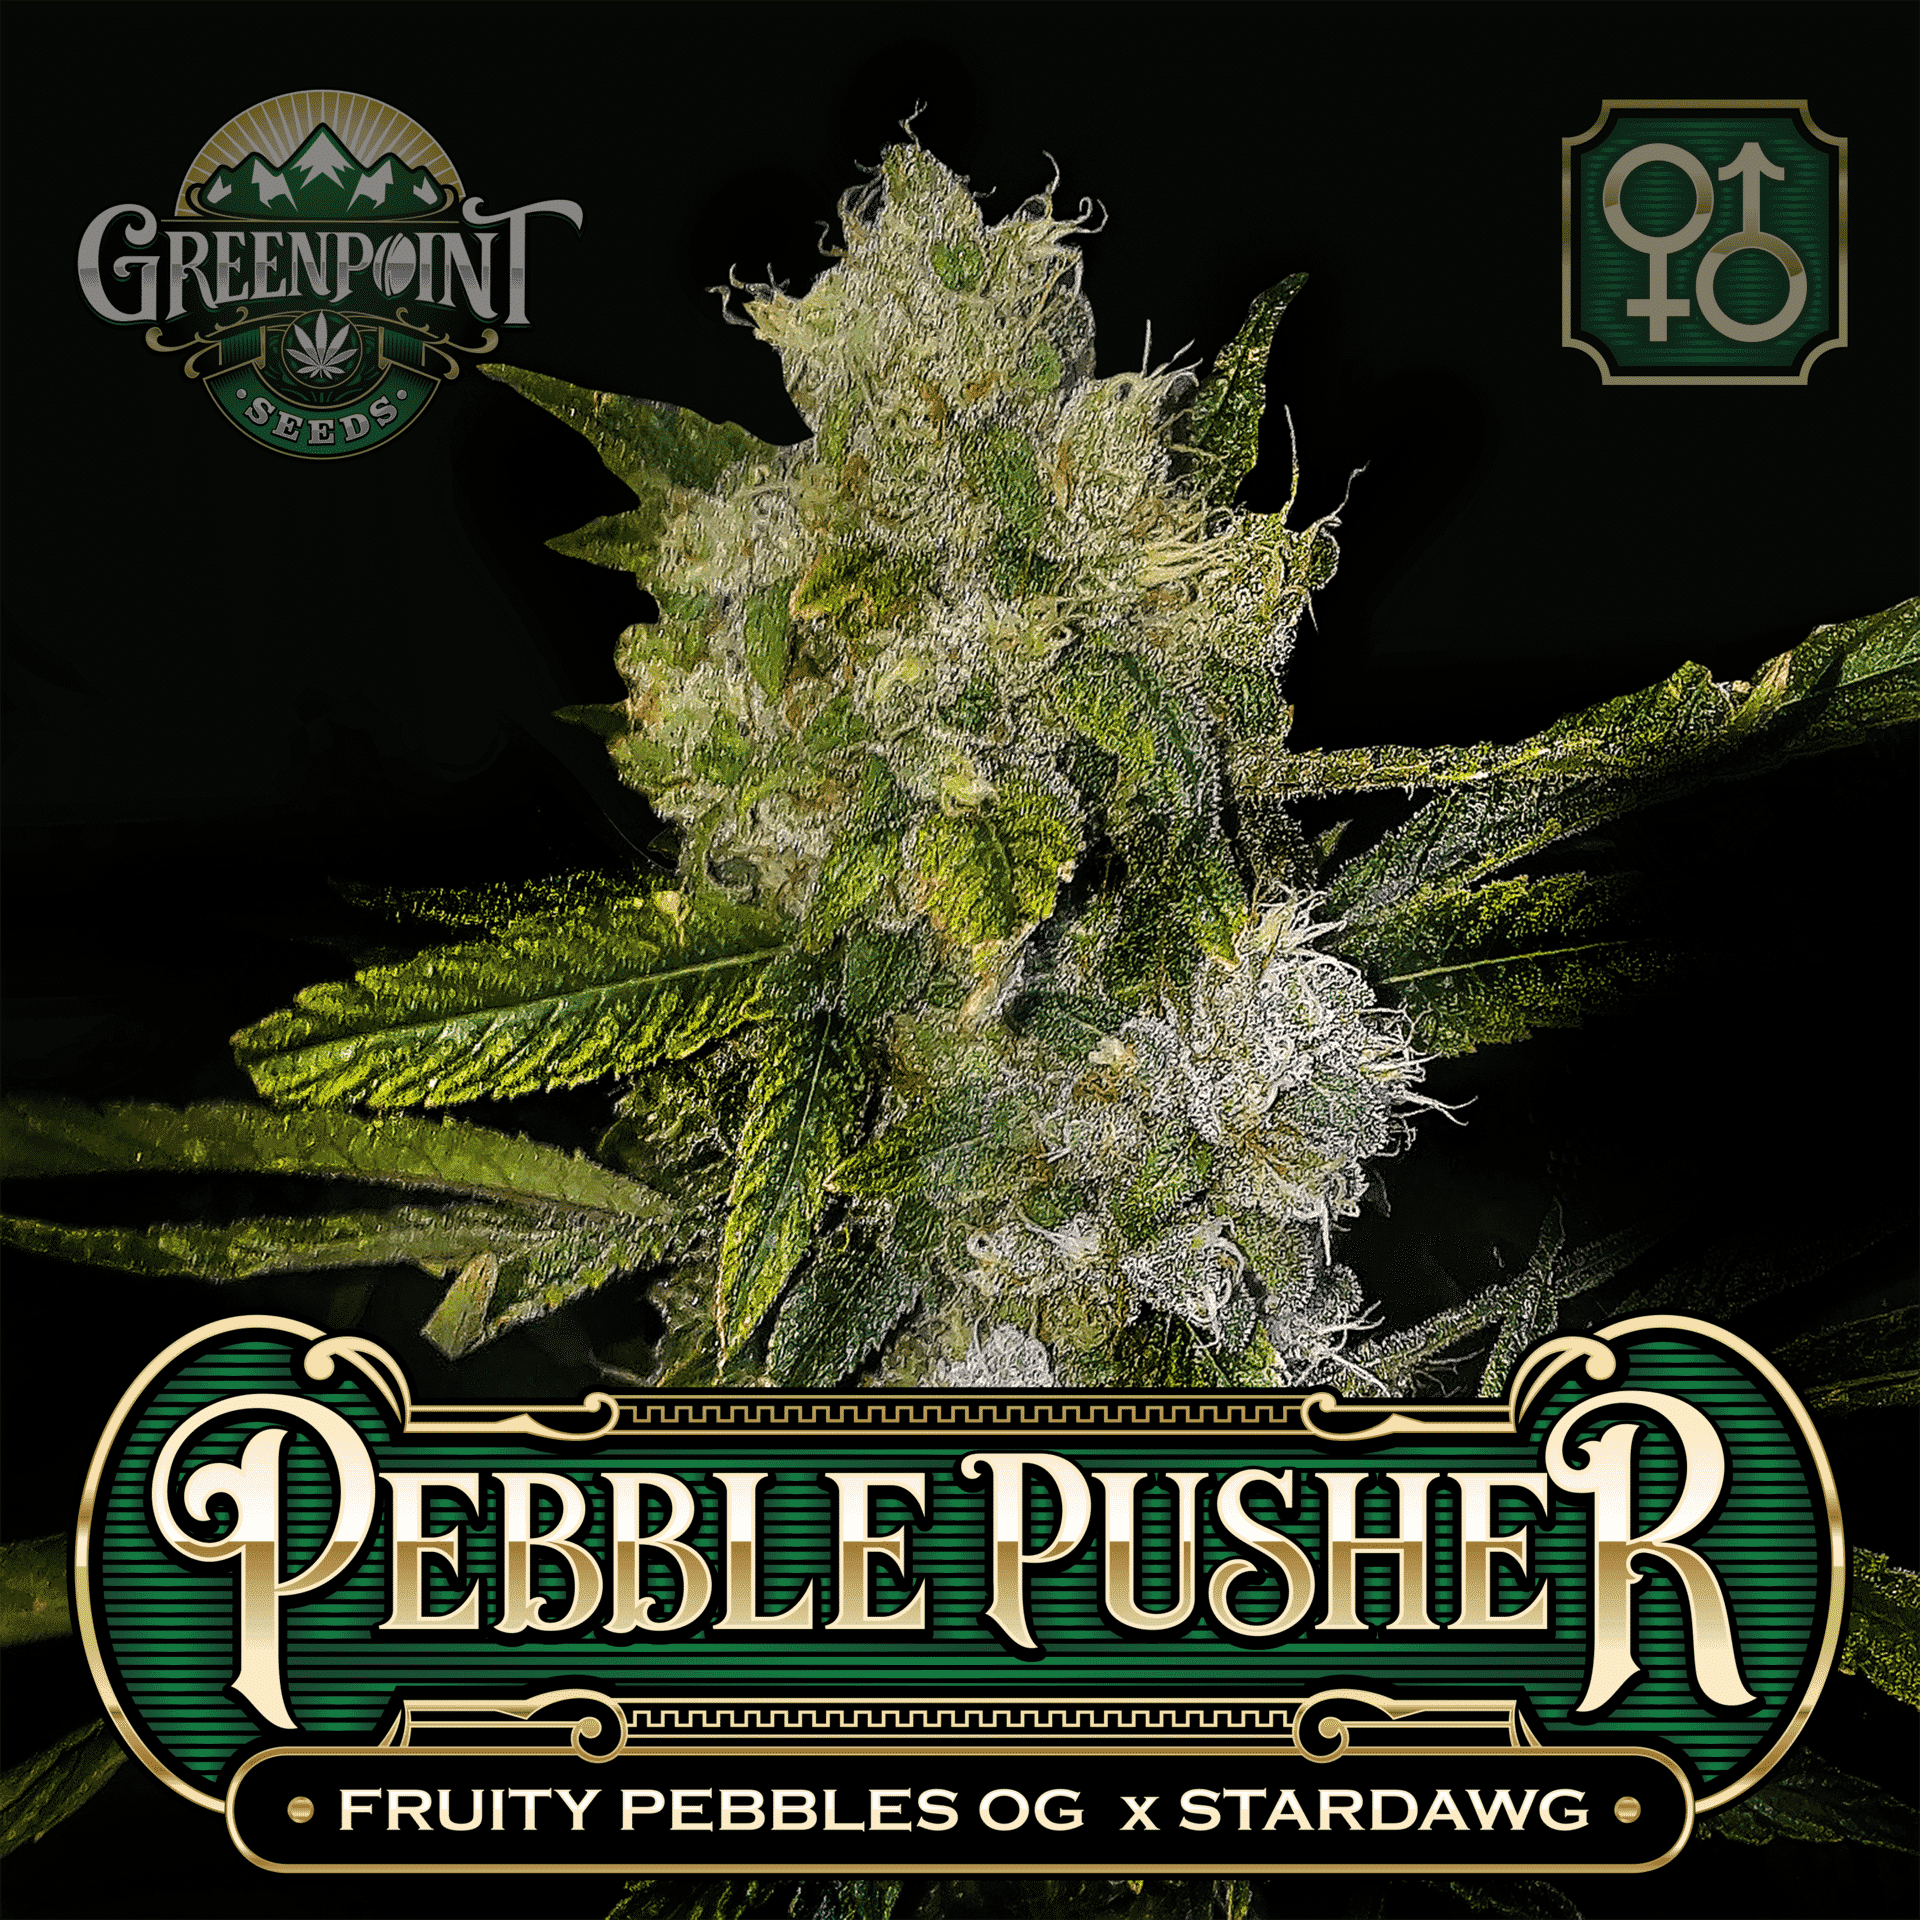 Pebble Pusher - Fruity Pebbles Cannabis Strain | Greenpoint Seeds